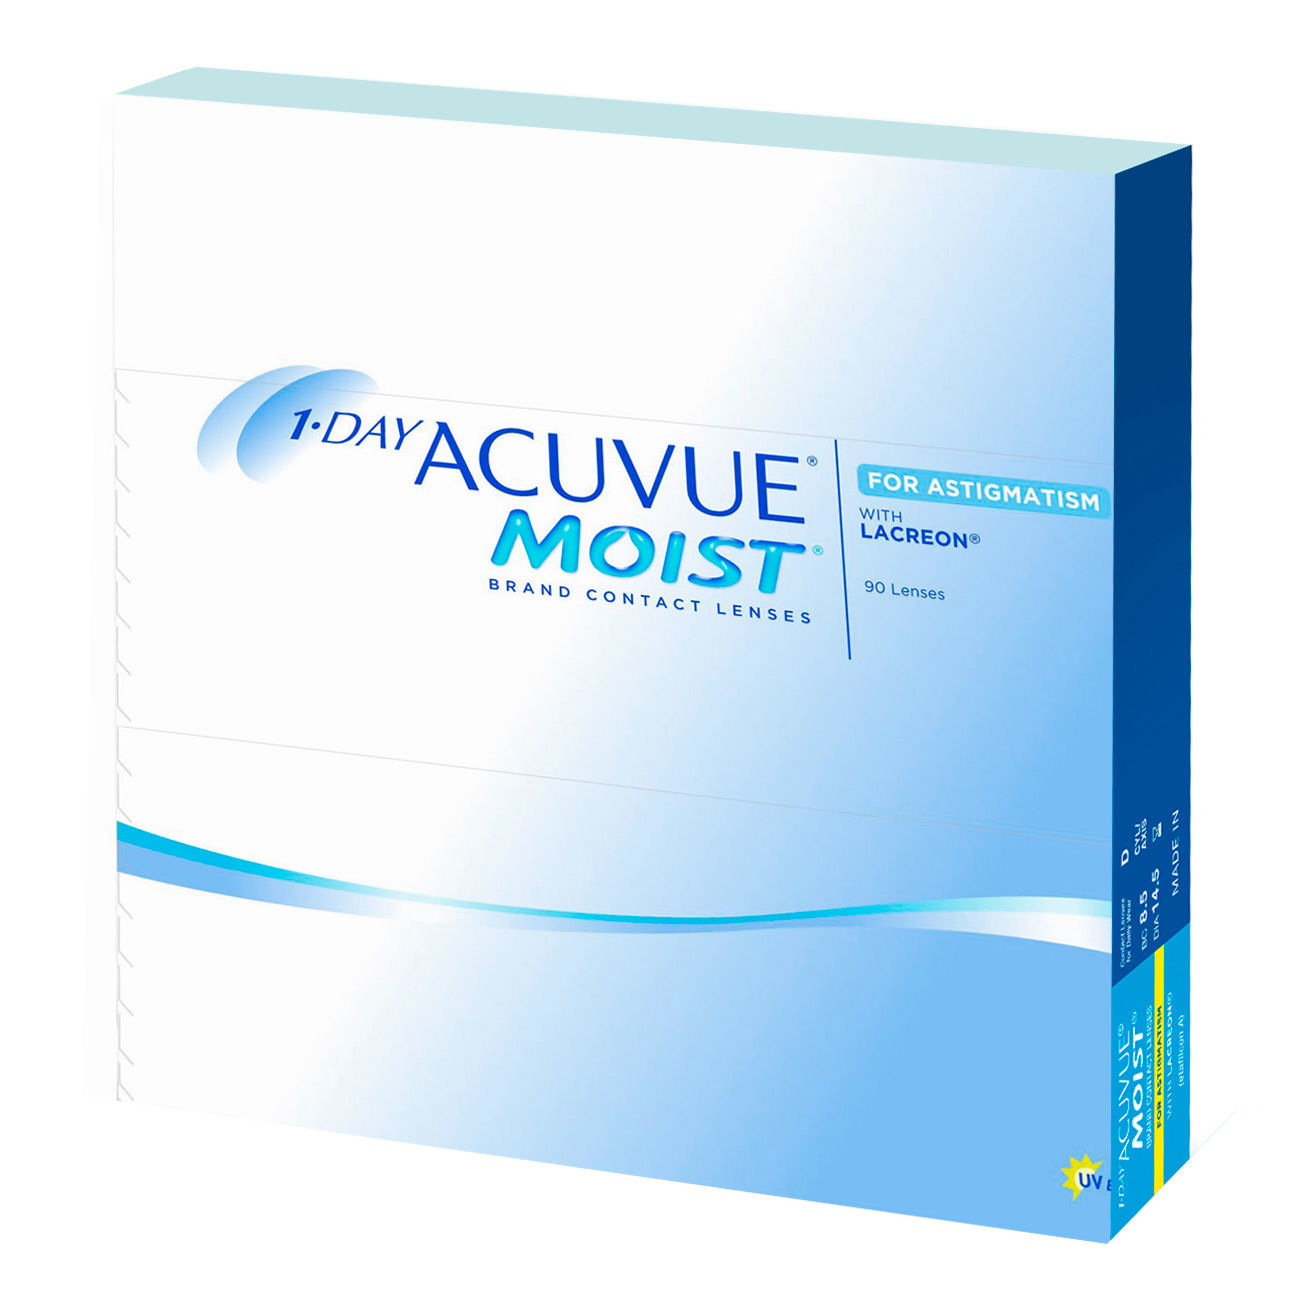 Контактные линзы 1 DAY ACUVUE MOIST for ASTIGMATISM (90 линз)